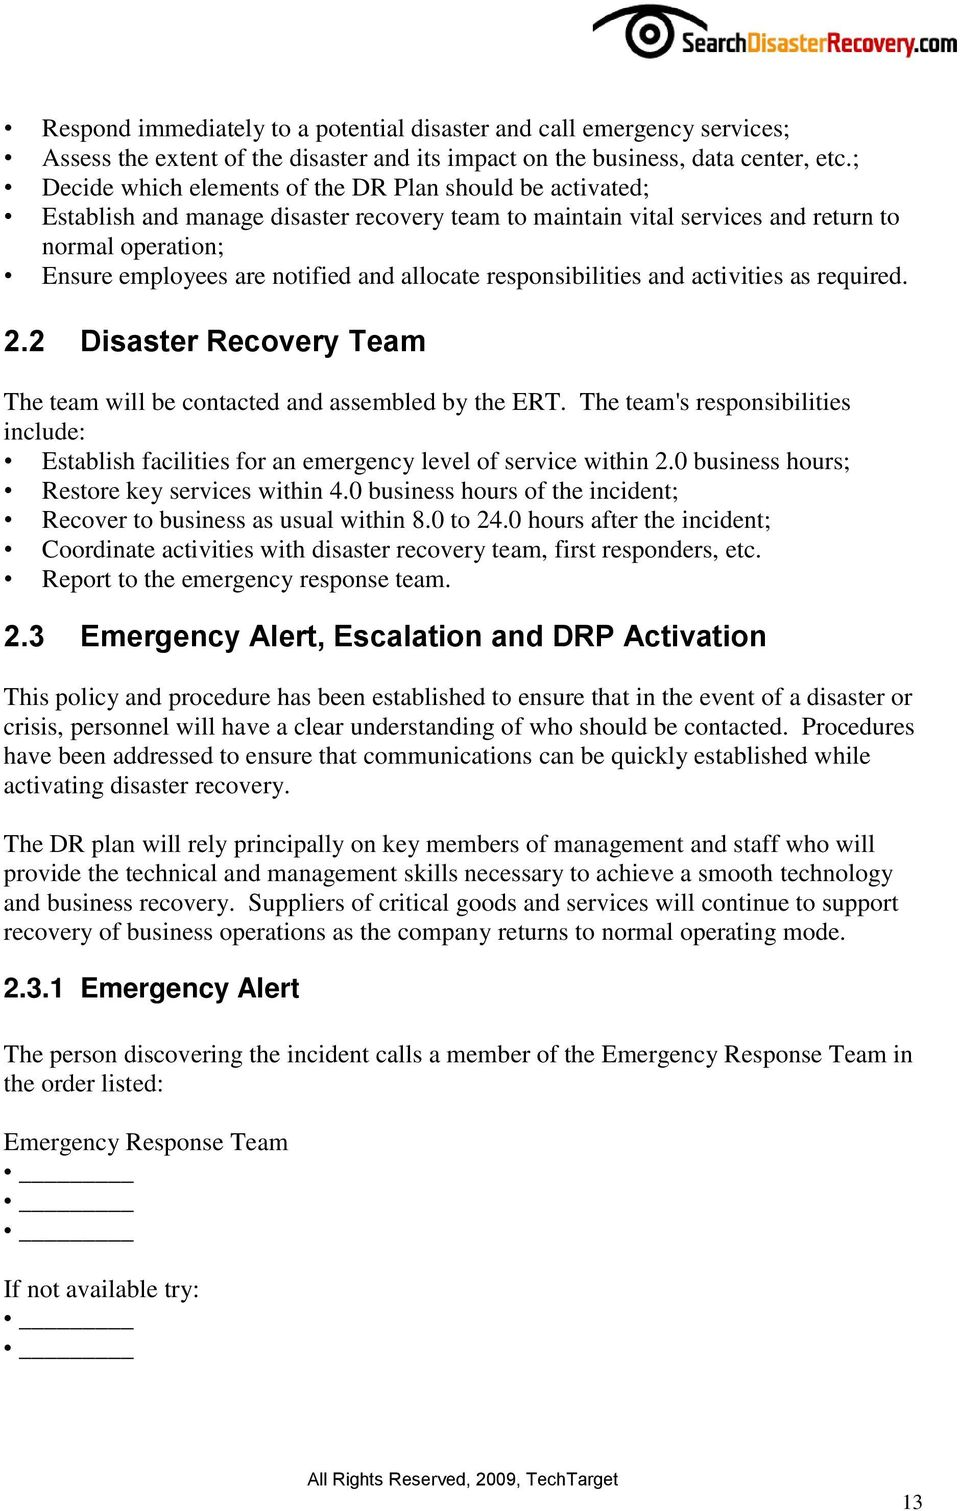 allocate responsibilities and activities as required. 2.2 Disaster Recovery Team The team will be contacted and assembled by the ERT.